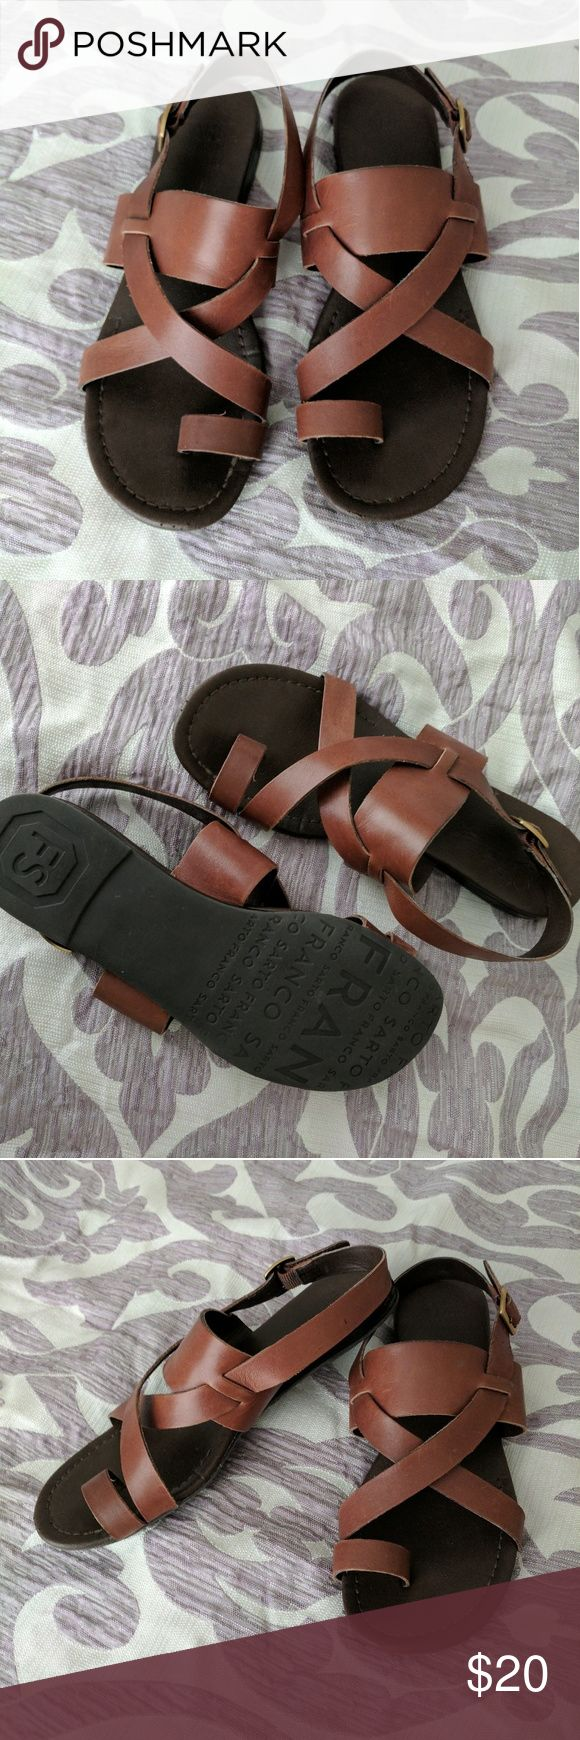 Leather Franco Sarto Sandals 8.5 Super comfy and well-made leather sandals by Franco Sarto. These are a womens US 8.5,  but do have a slimmer fit. Franco Sarto Shoes Sandals